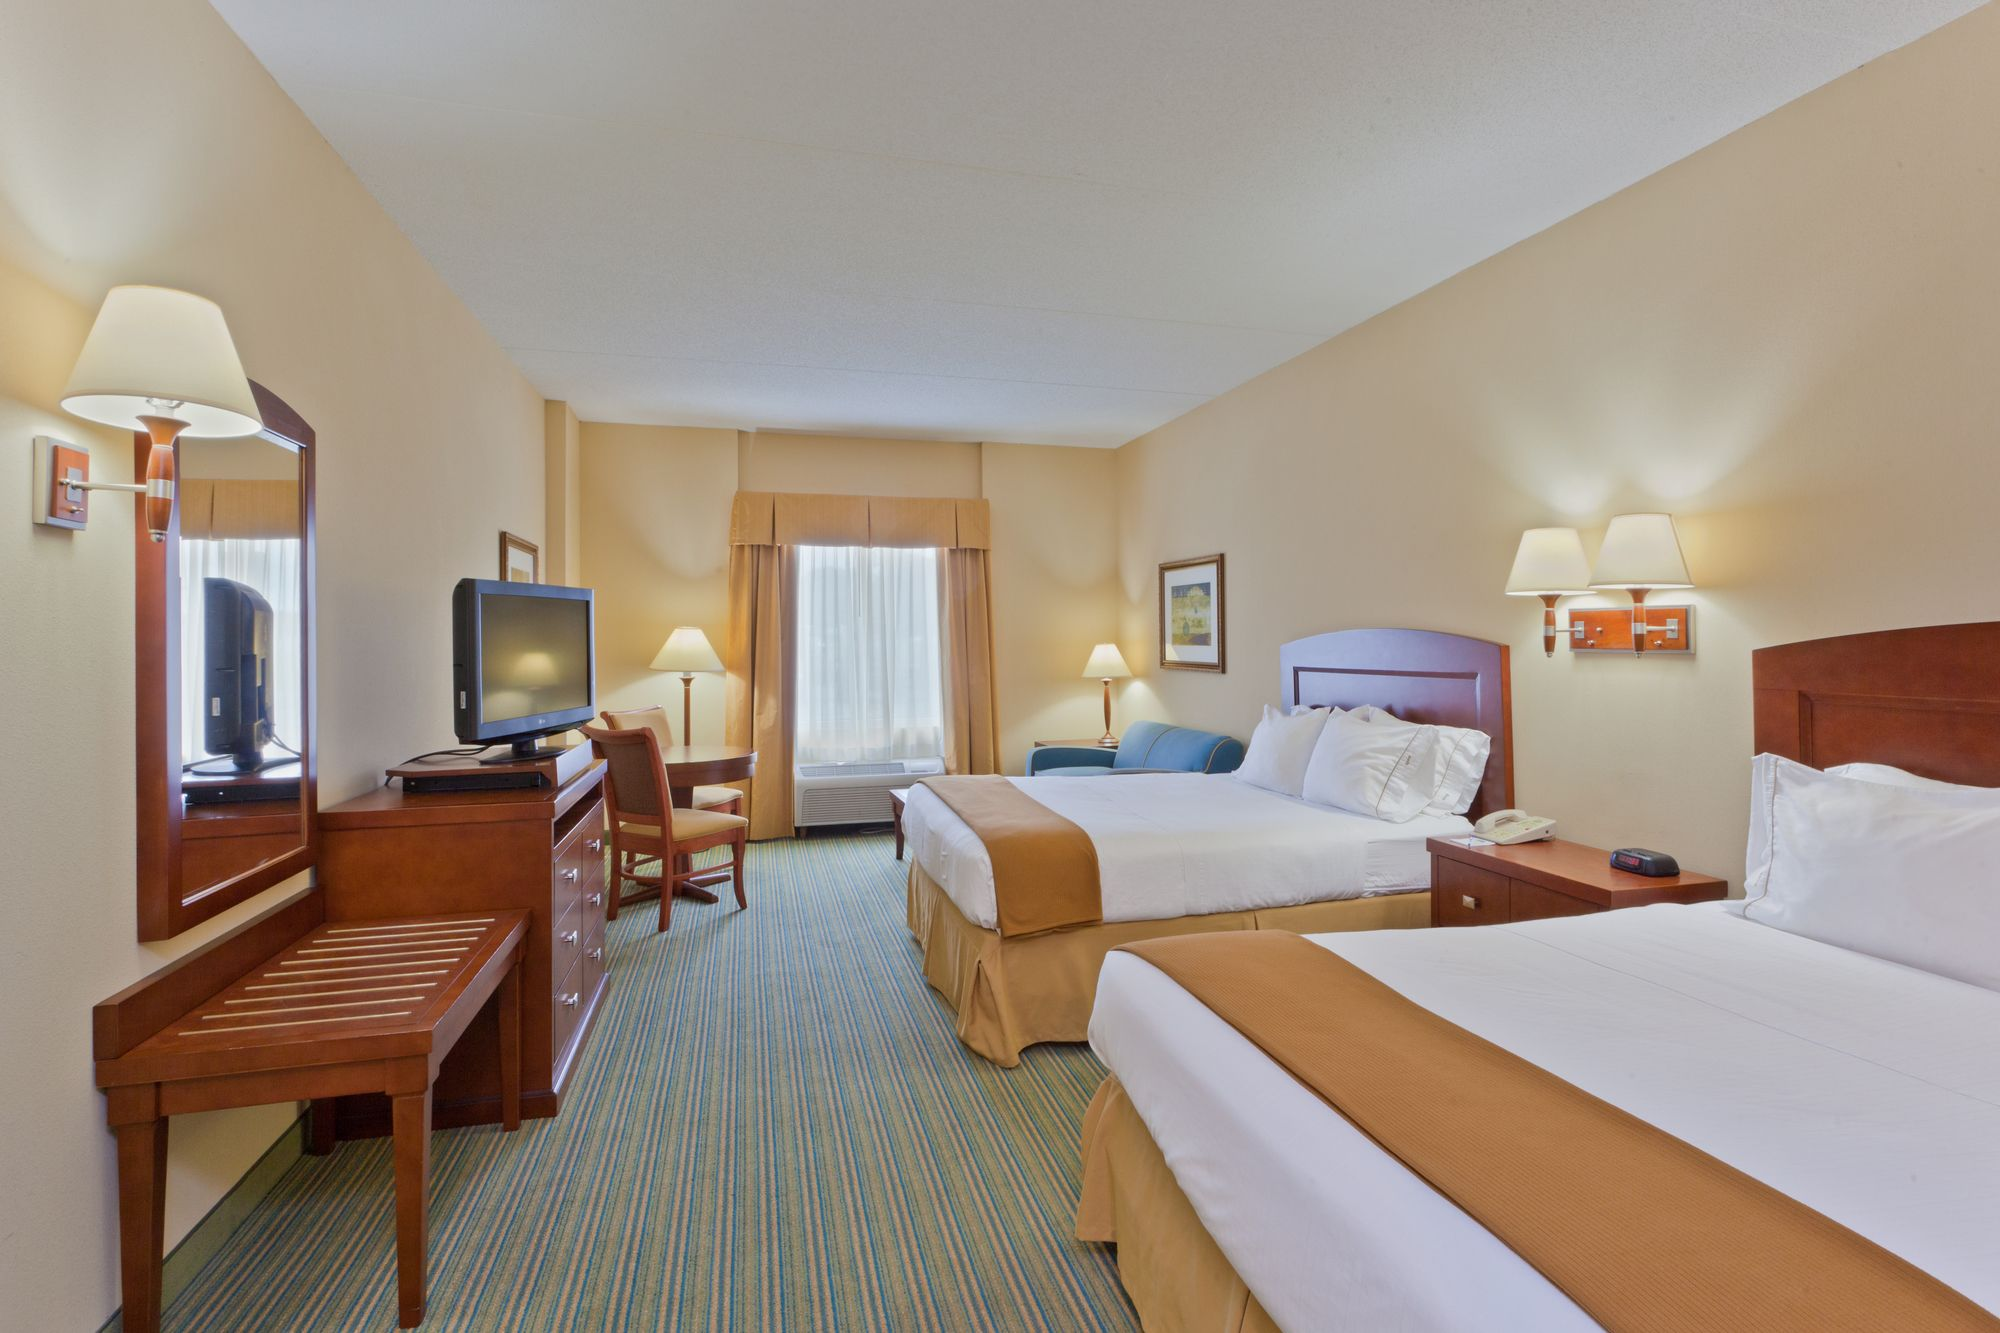 Holiday Inn Express - Rehoboth Beach in Rehoboth Beach, DE